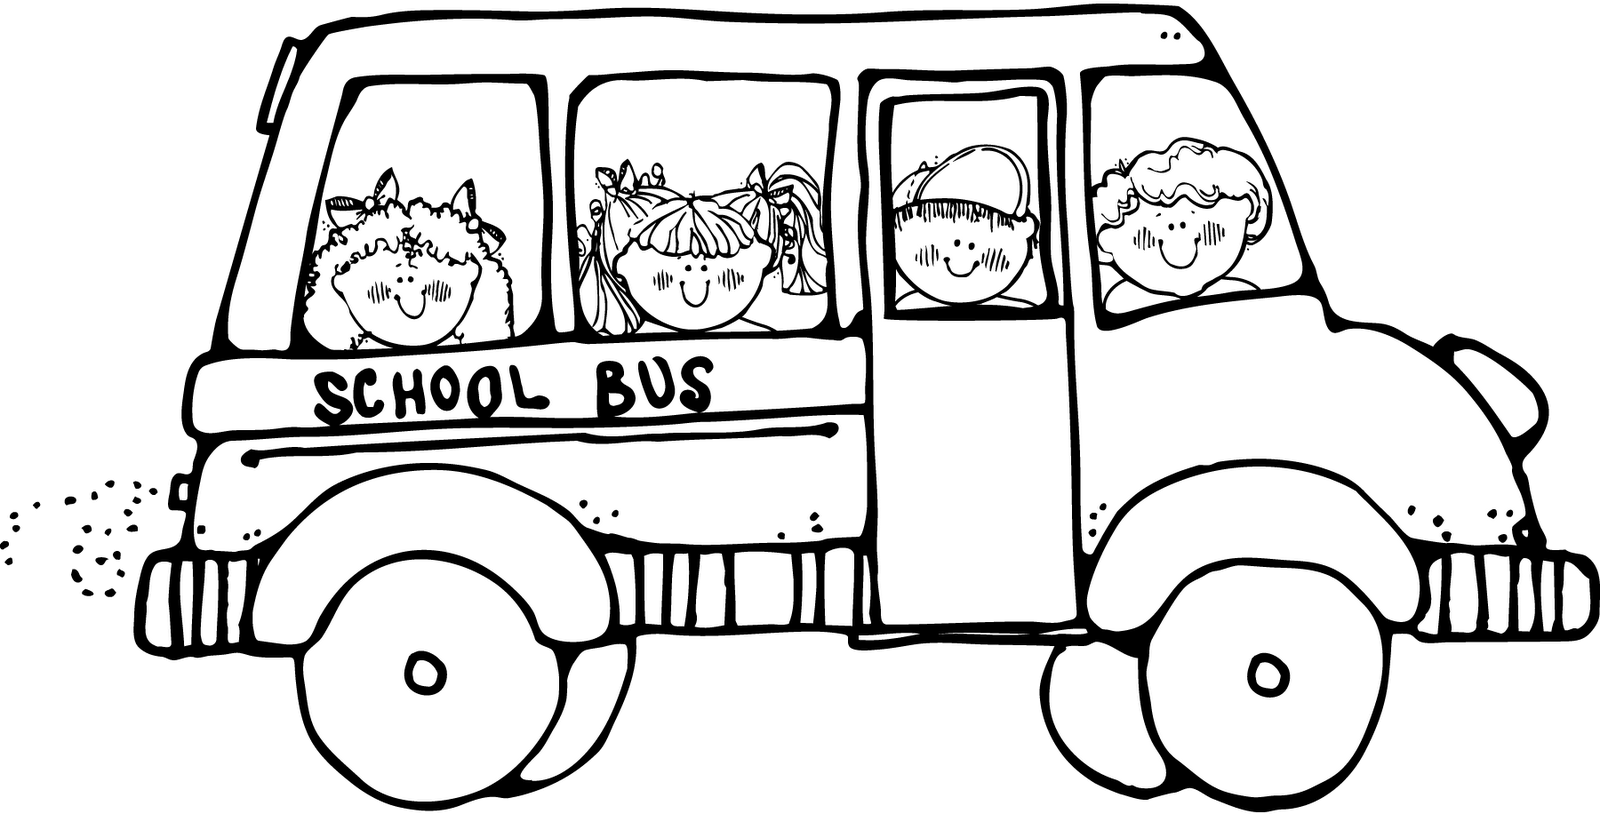 school bus image black and white.